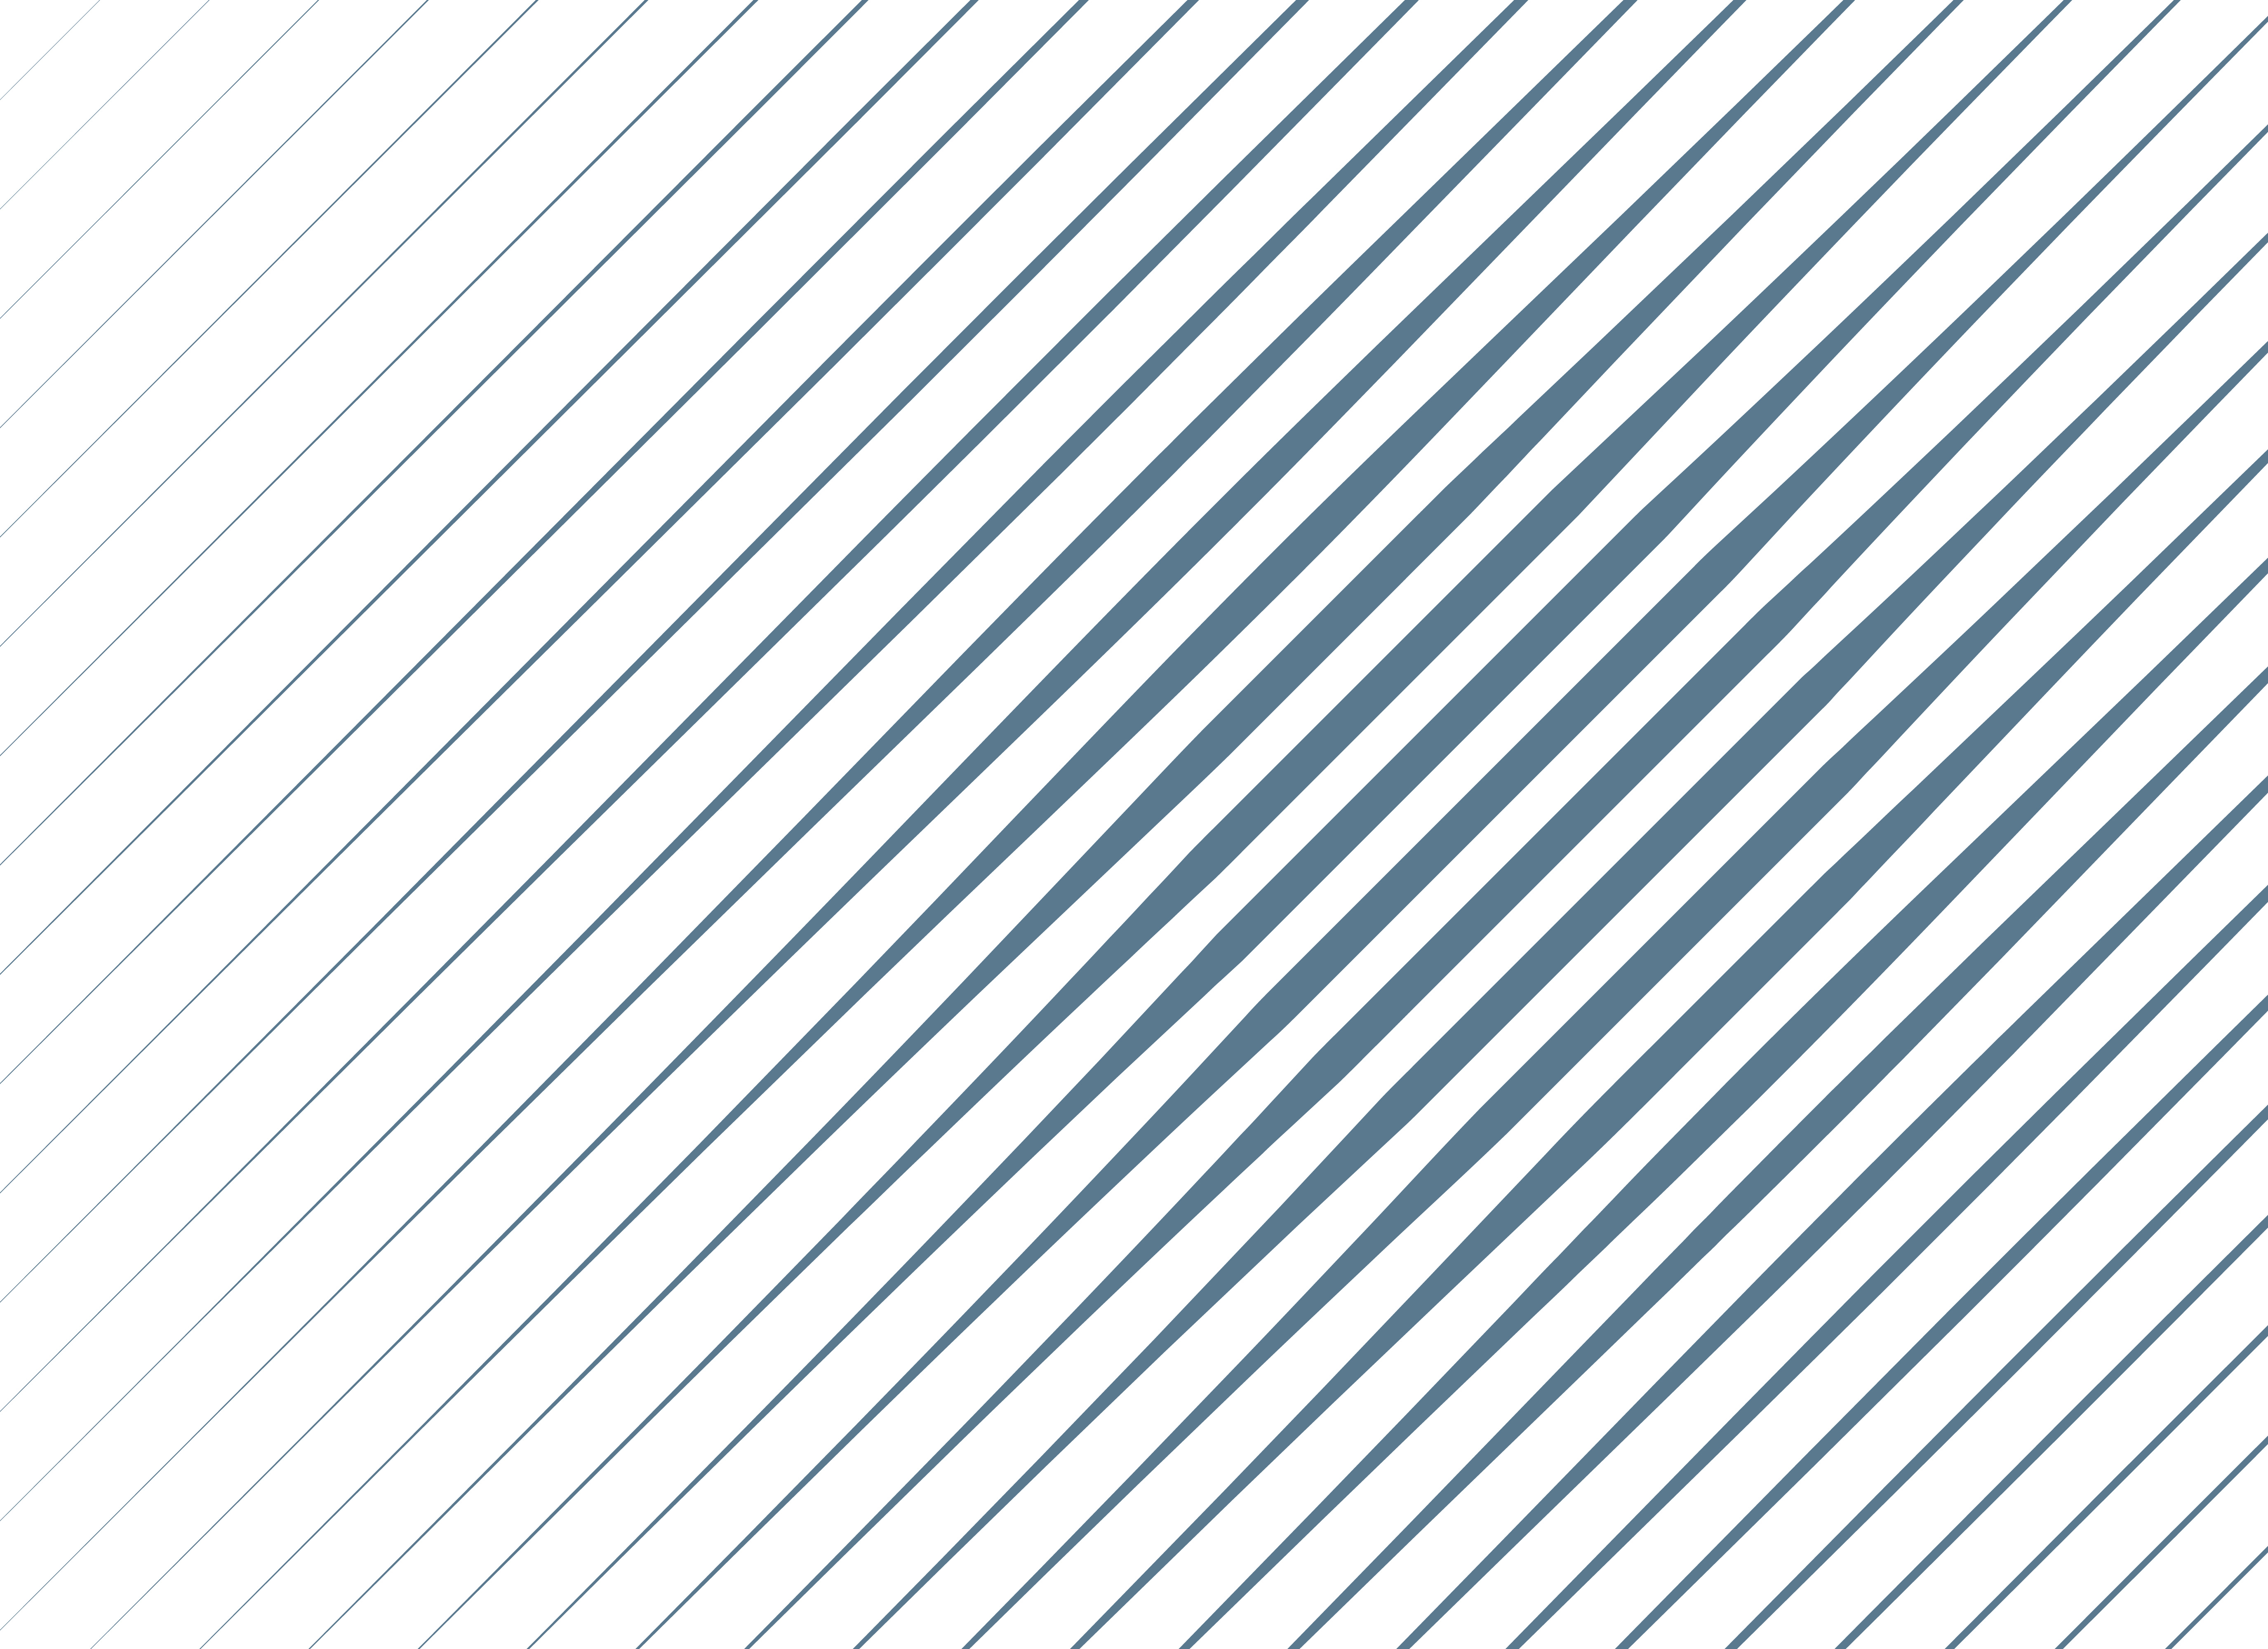 Diagonal Line Design : Abstract diagonal lines pattern background download free